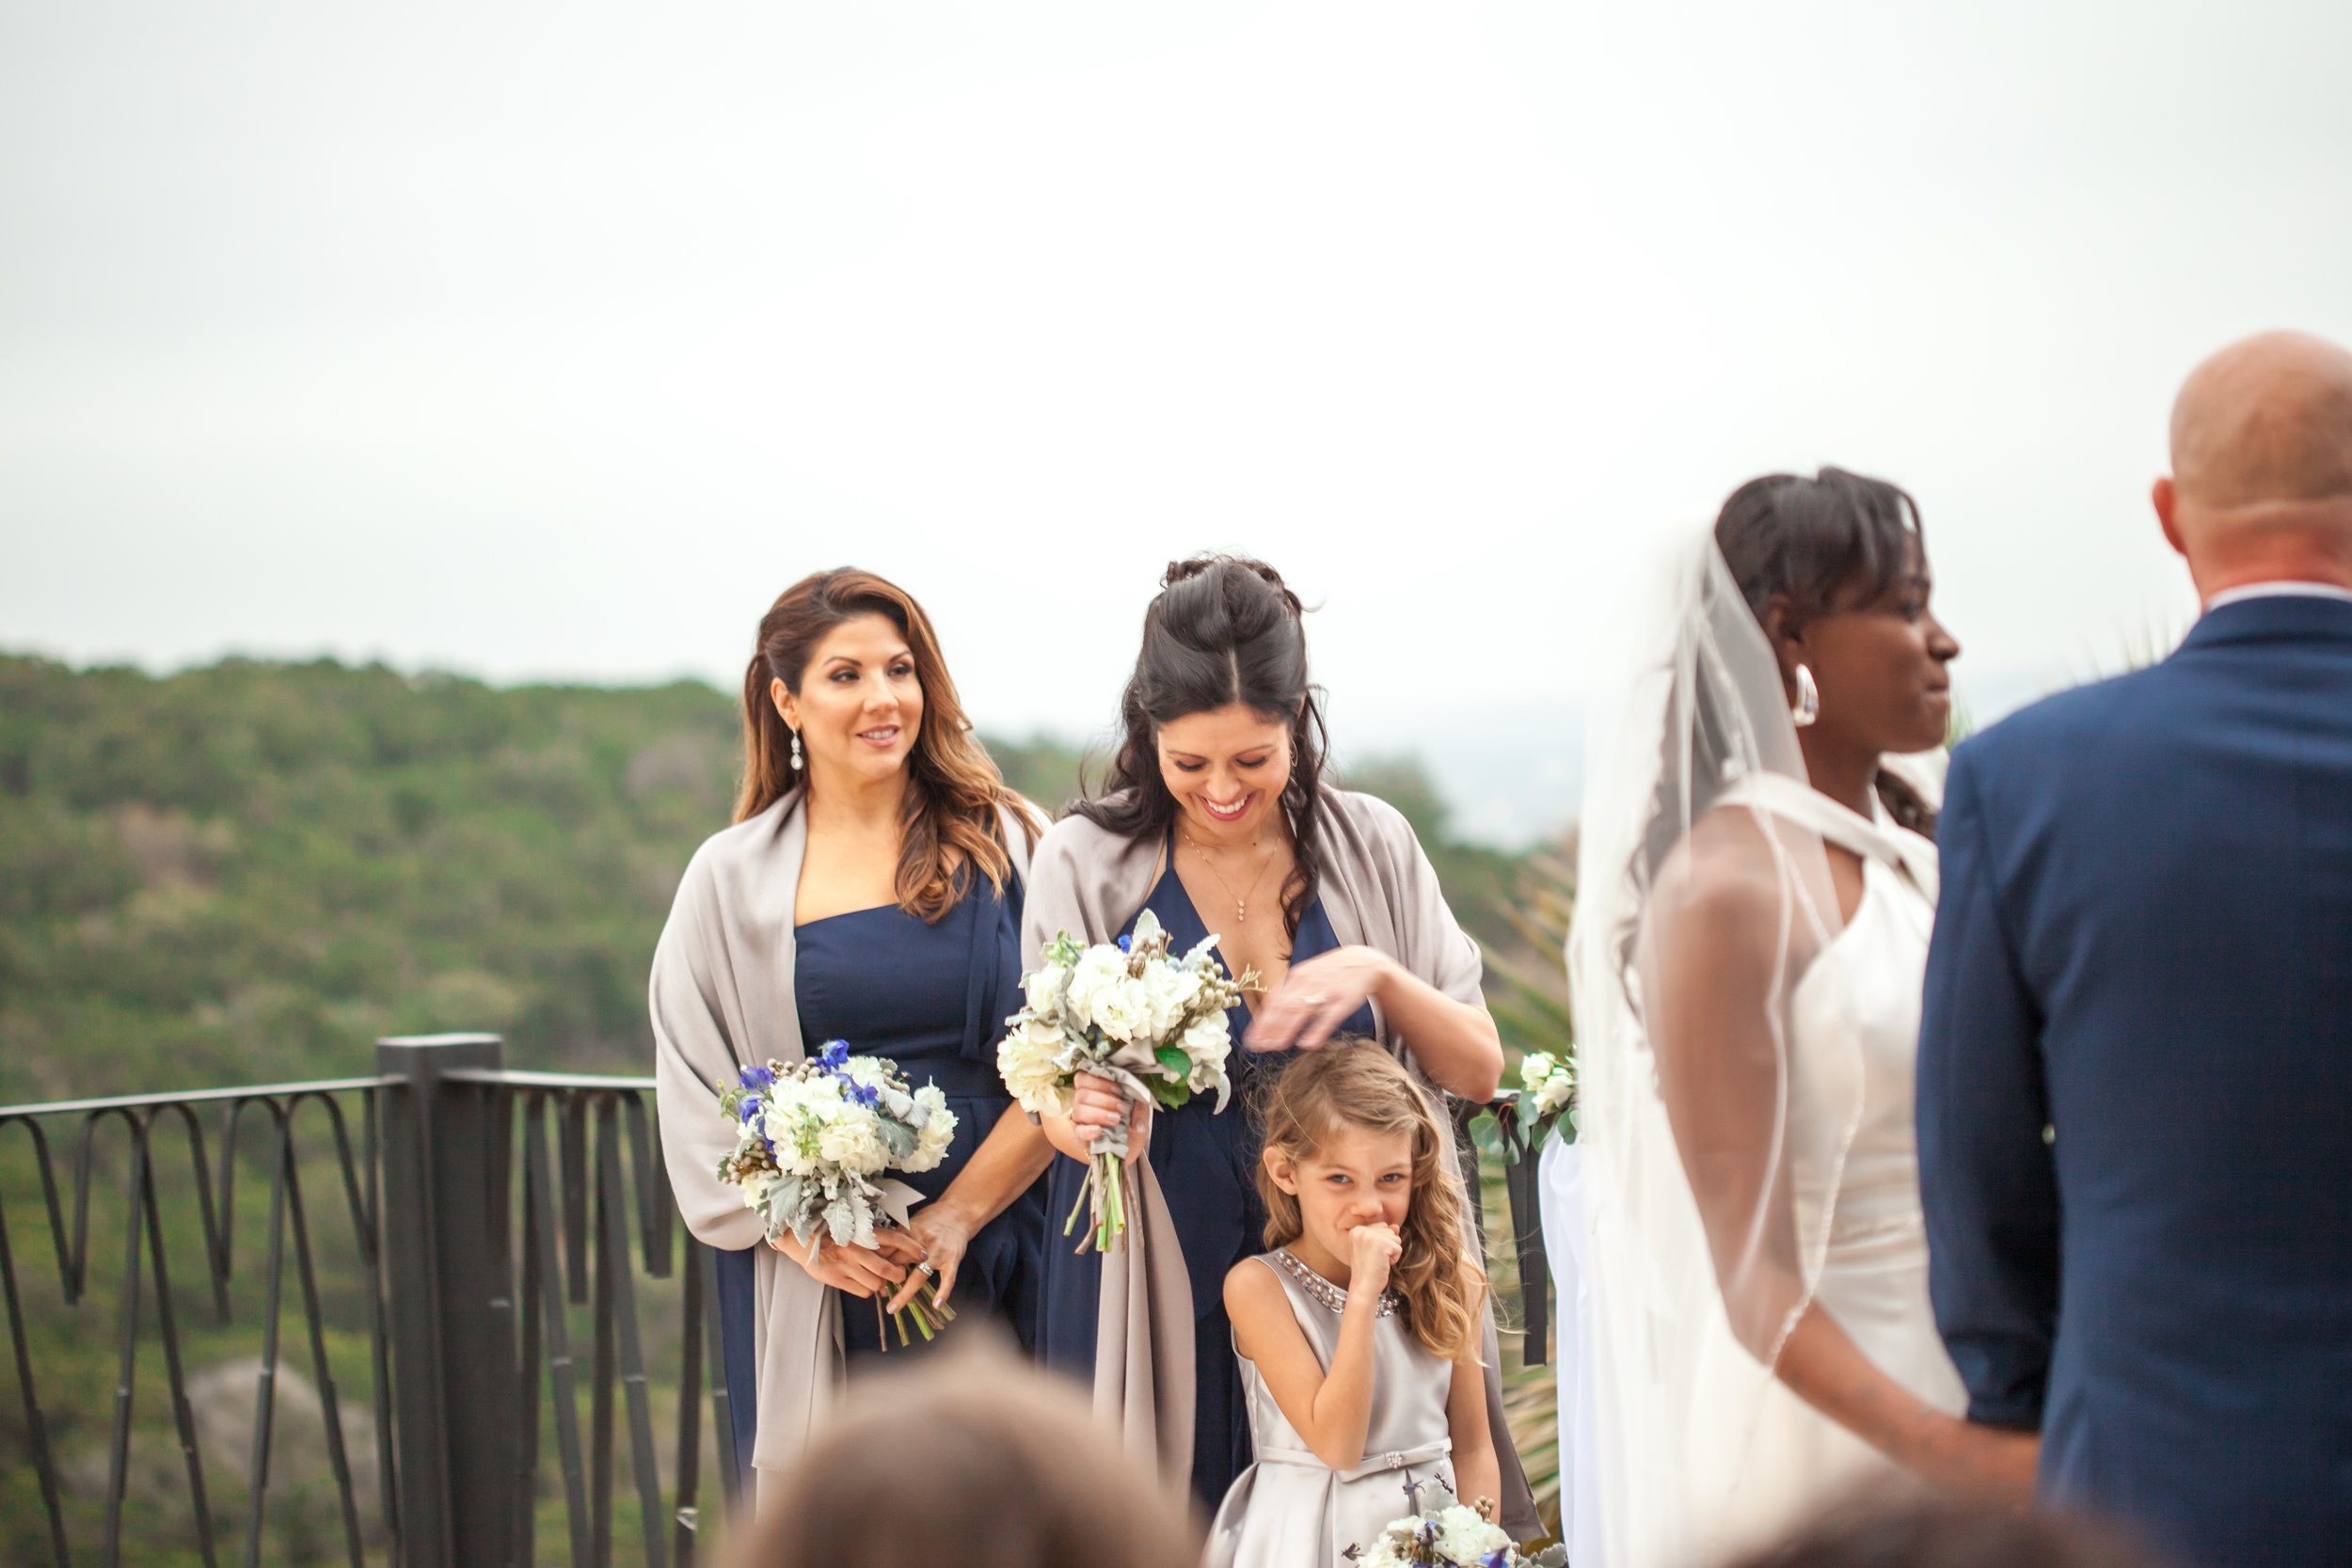 Texas wedding photographer Tauni Joy Photography